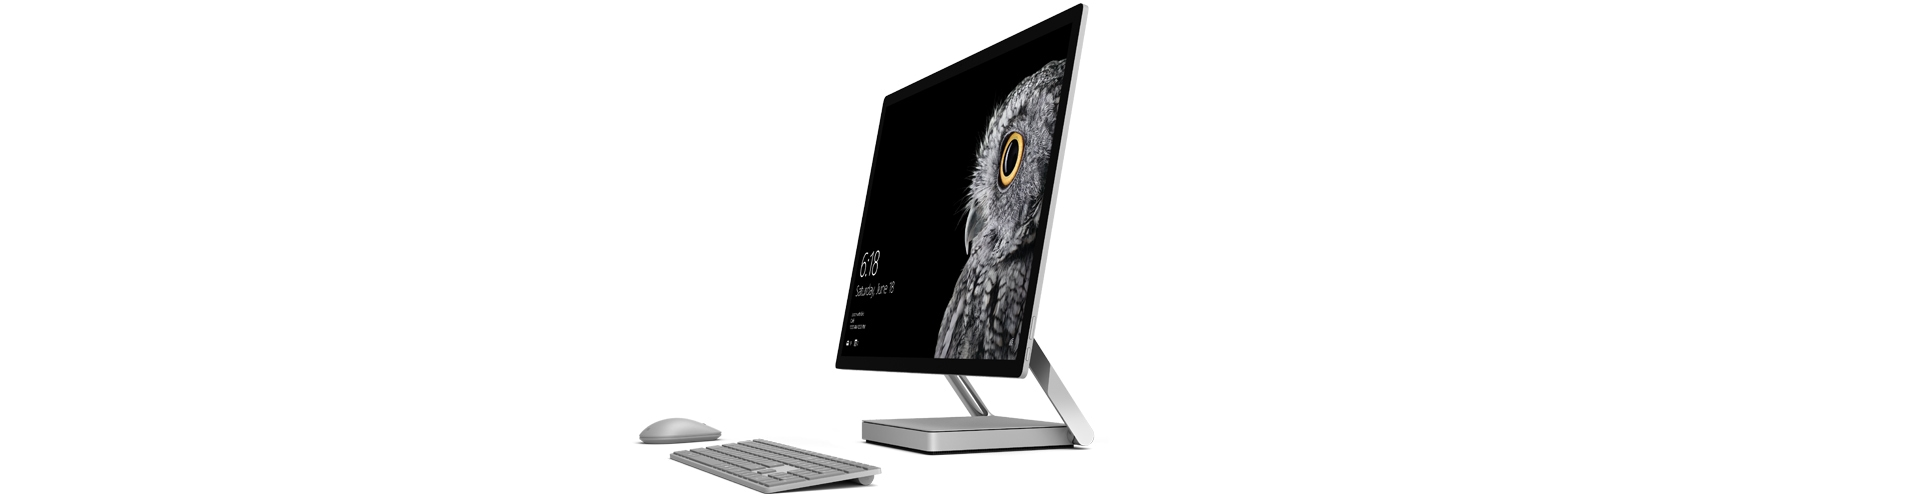 Surface Studio i upprätt läge med Surface Mouse och Surface Keyboard.